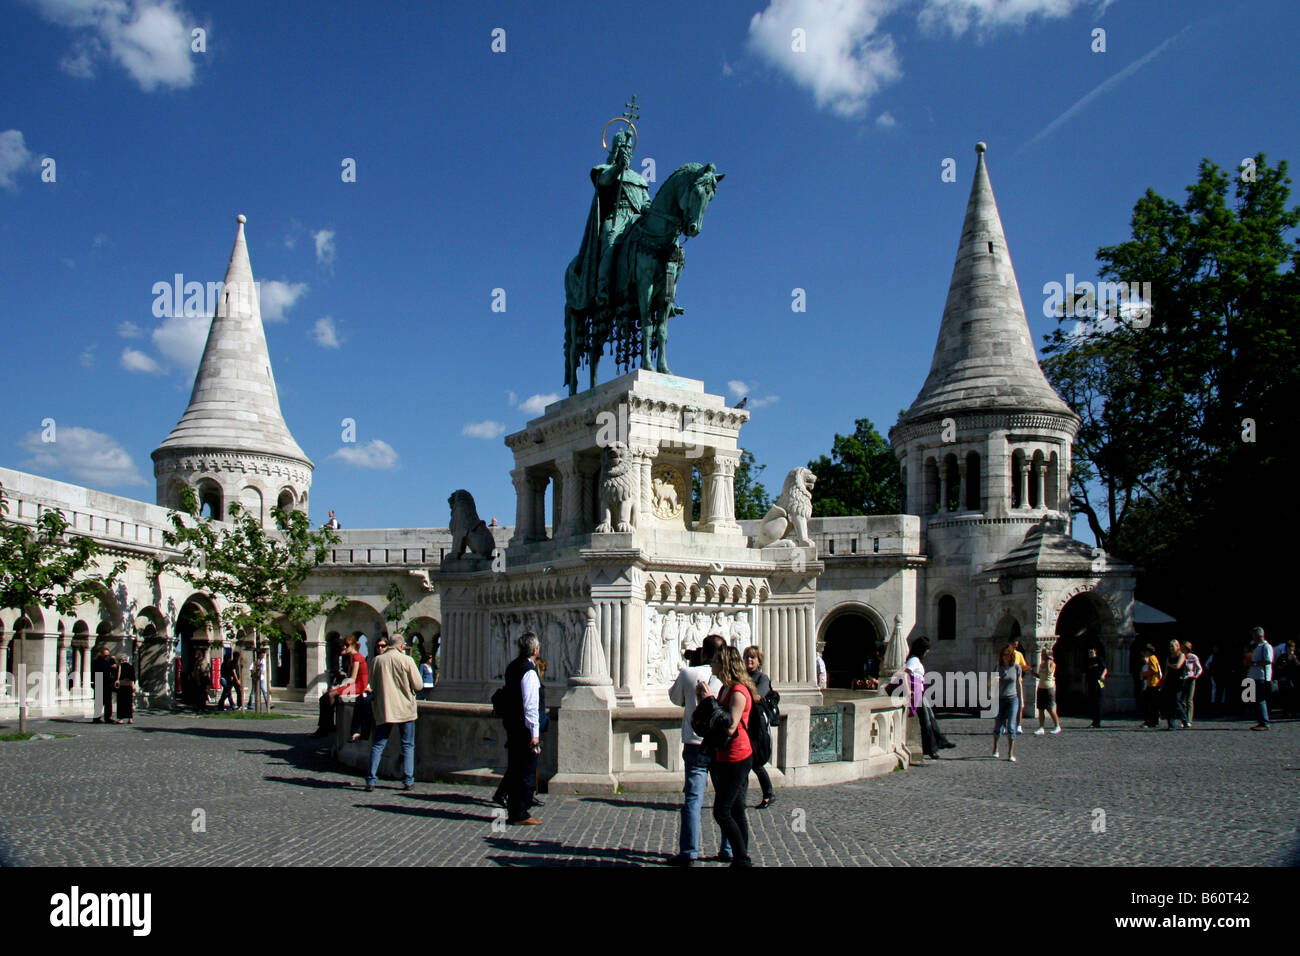 Statue of King Stephen I of Hungary in front of Fisherman's Bastion, Budapest, Hungary, Europe Stock Photo